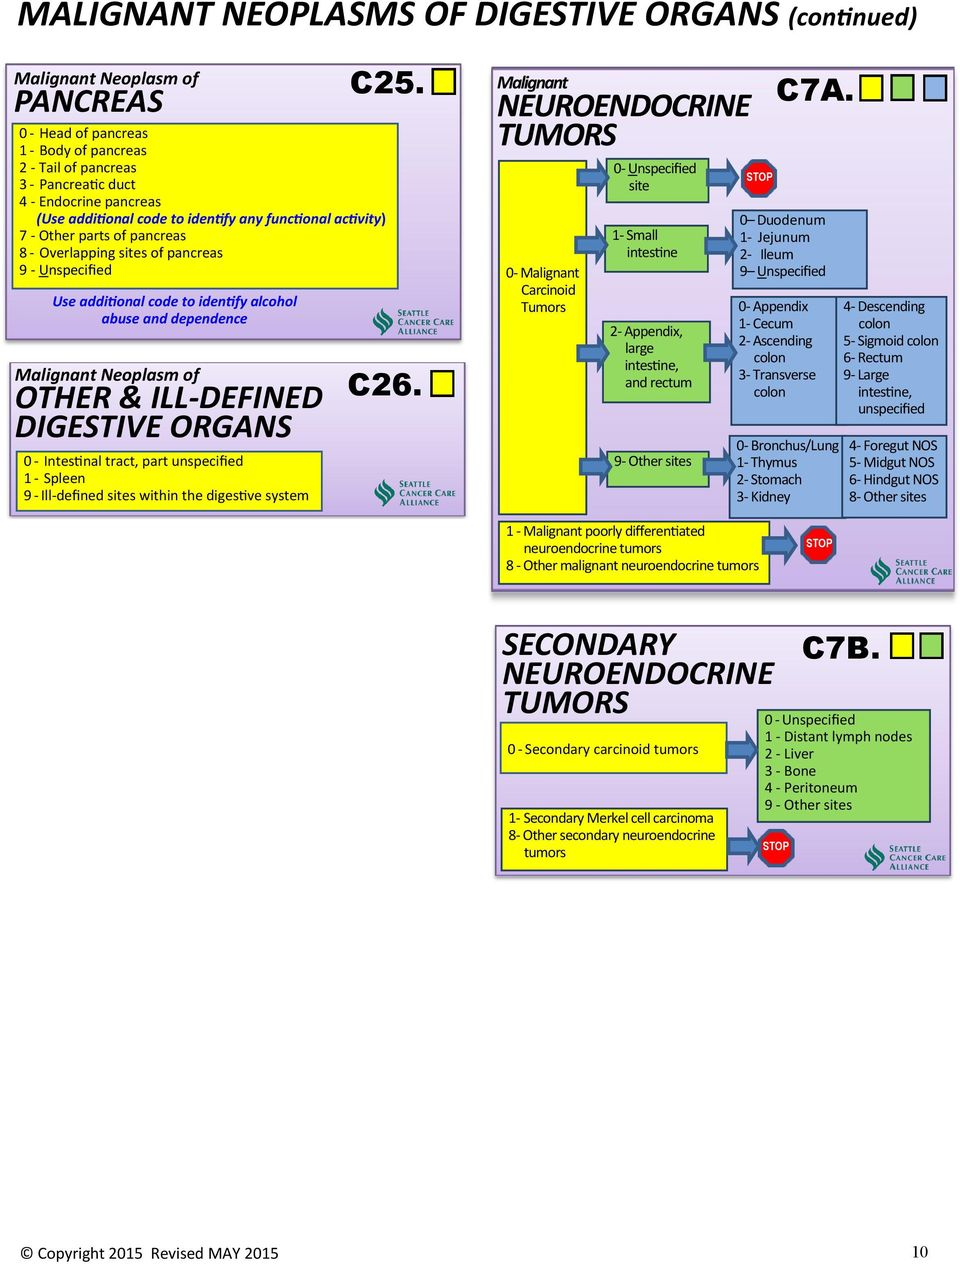 SCCA REFERENCE MANUAL ICD-10 - PDF